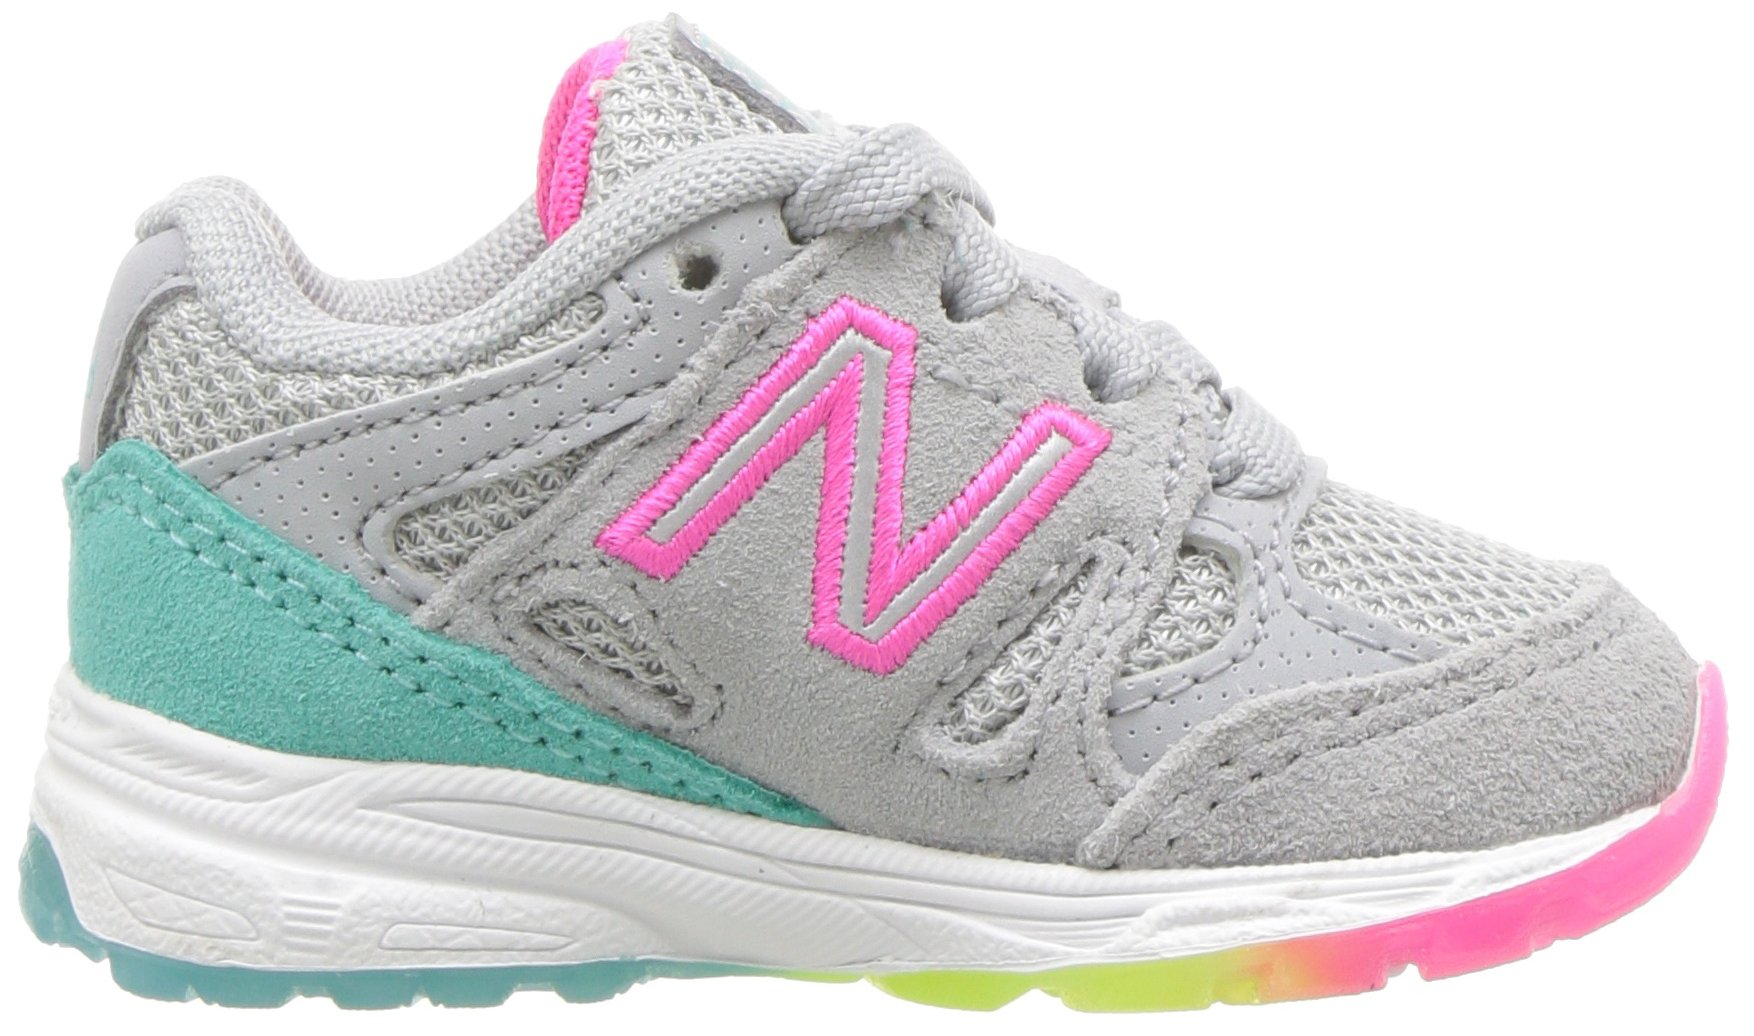 New Balance Girls' 888v1 Running Shoe, Silver Mink/Rainbow, 6 W US Big Kid by New Balance (Image #7)